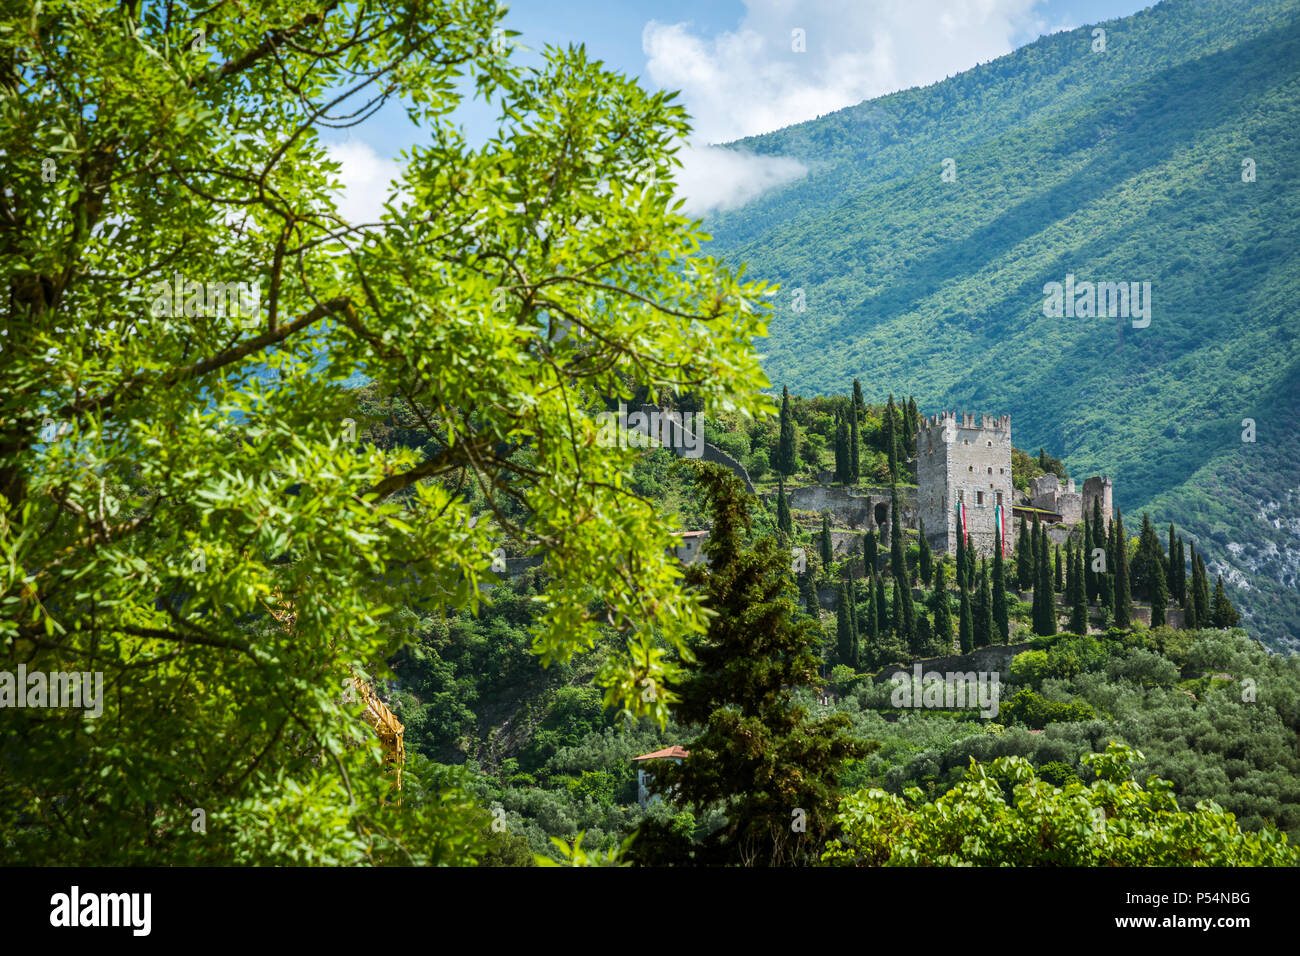 Arco Castle (Castello di Arco) is a ruined castle located on a prominent spur high above Arco and the Sarca Valley in Trentino Alto Adige, northern It - Stock Image